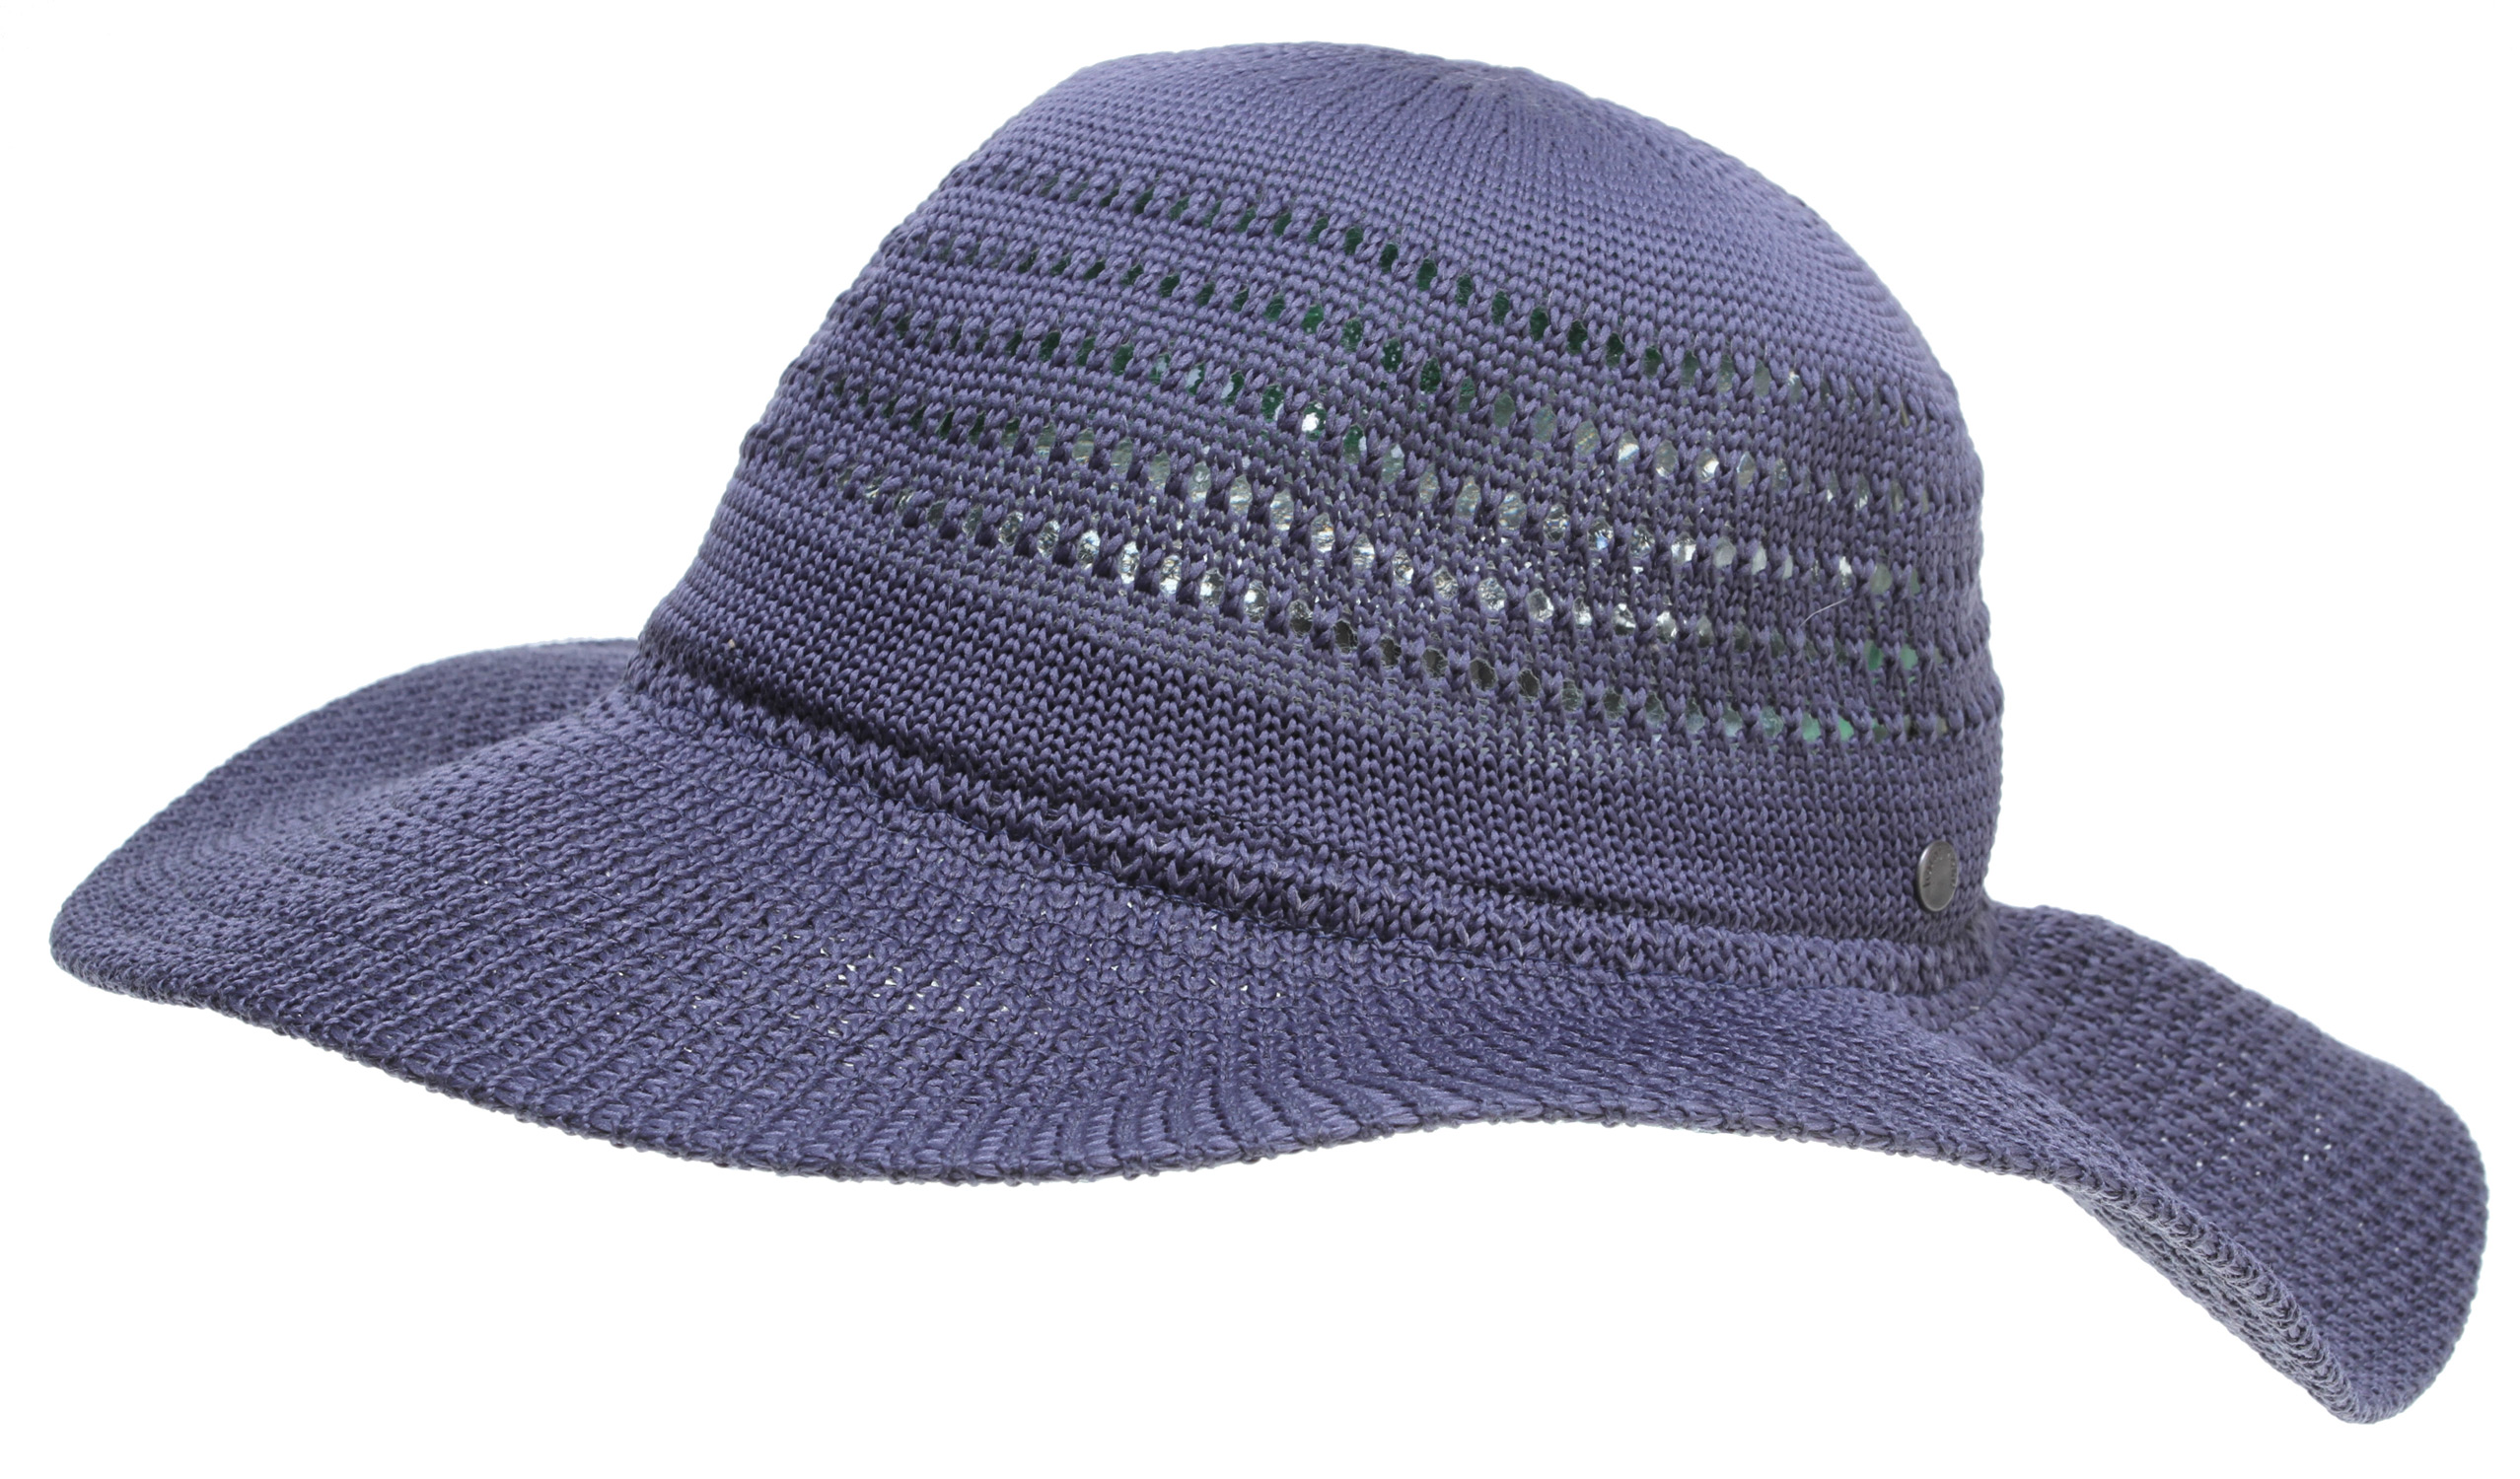 Key Features of the Horny Toad Big Easy Hat: Fabric: 100% Polyester Ultra-Flexible, Packable Sunhat Water-Friendly Material Soft, Elasticized Inner Sweatband Brim For Maximum Sun Protection Open Weave Pattern On Crown Provides Ventilation - $23.95